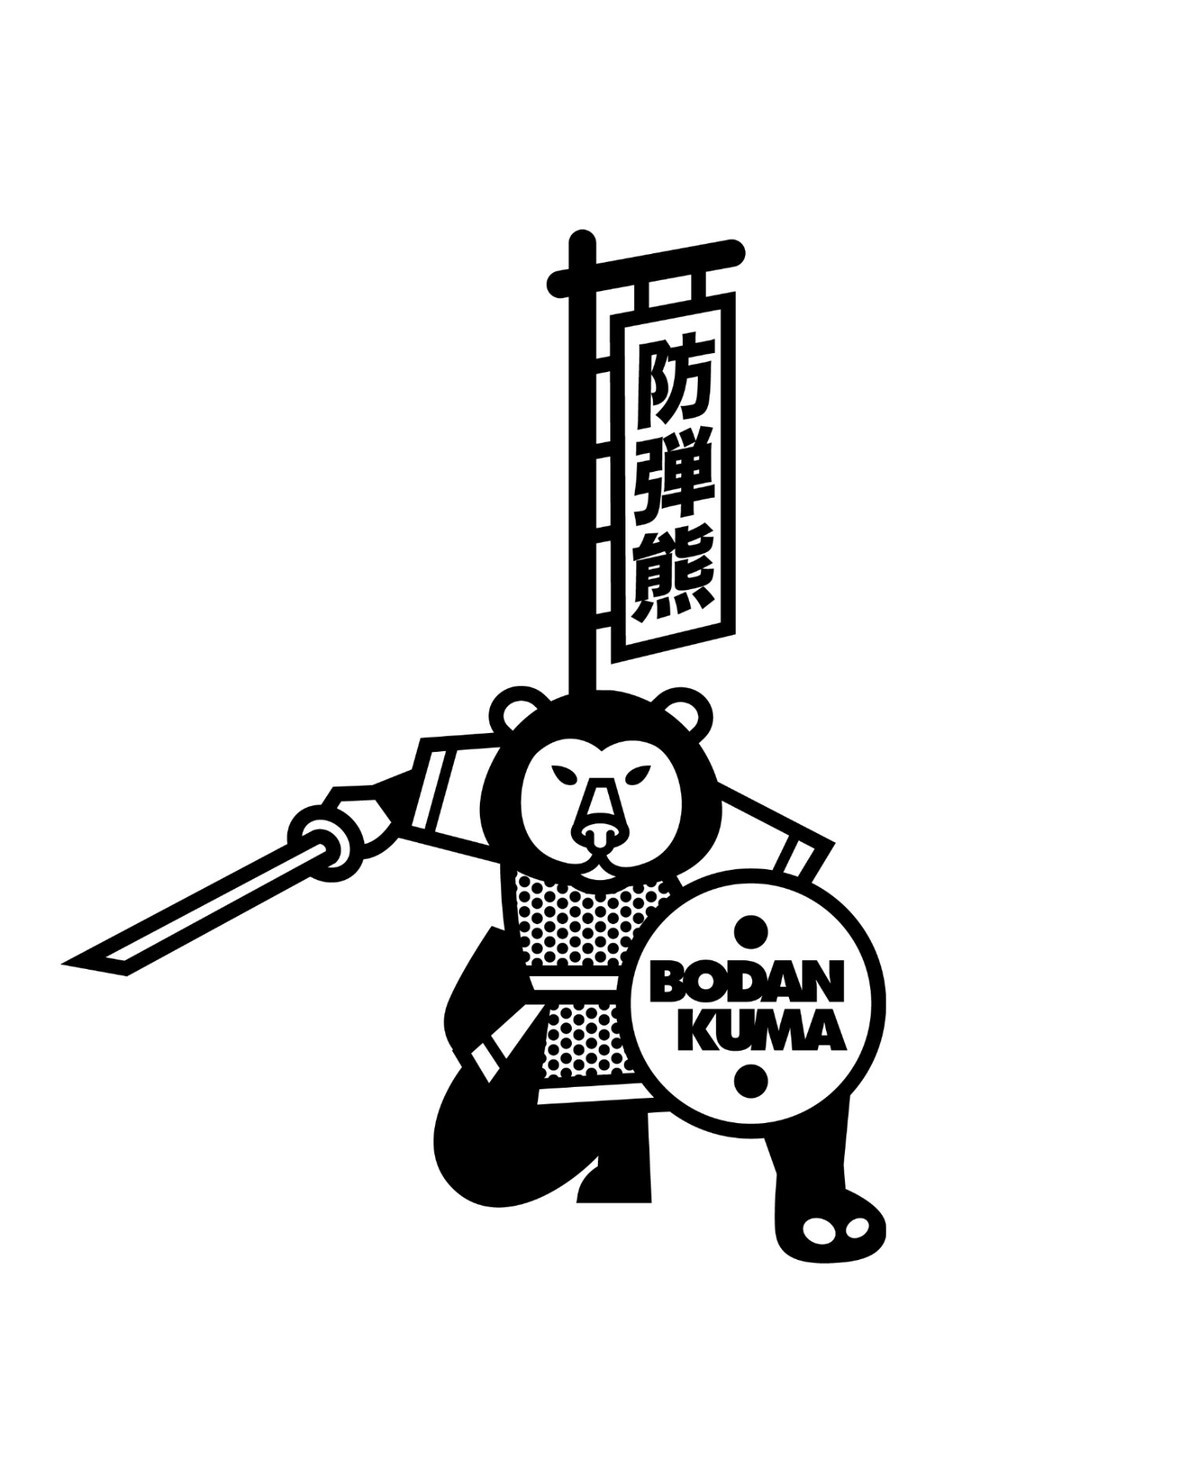 bodun kuma records logo